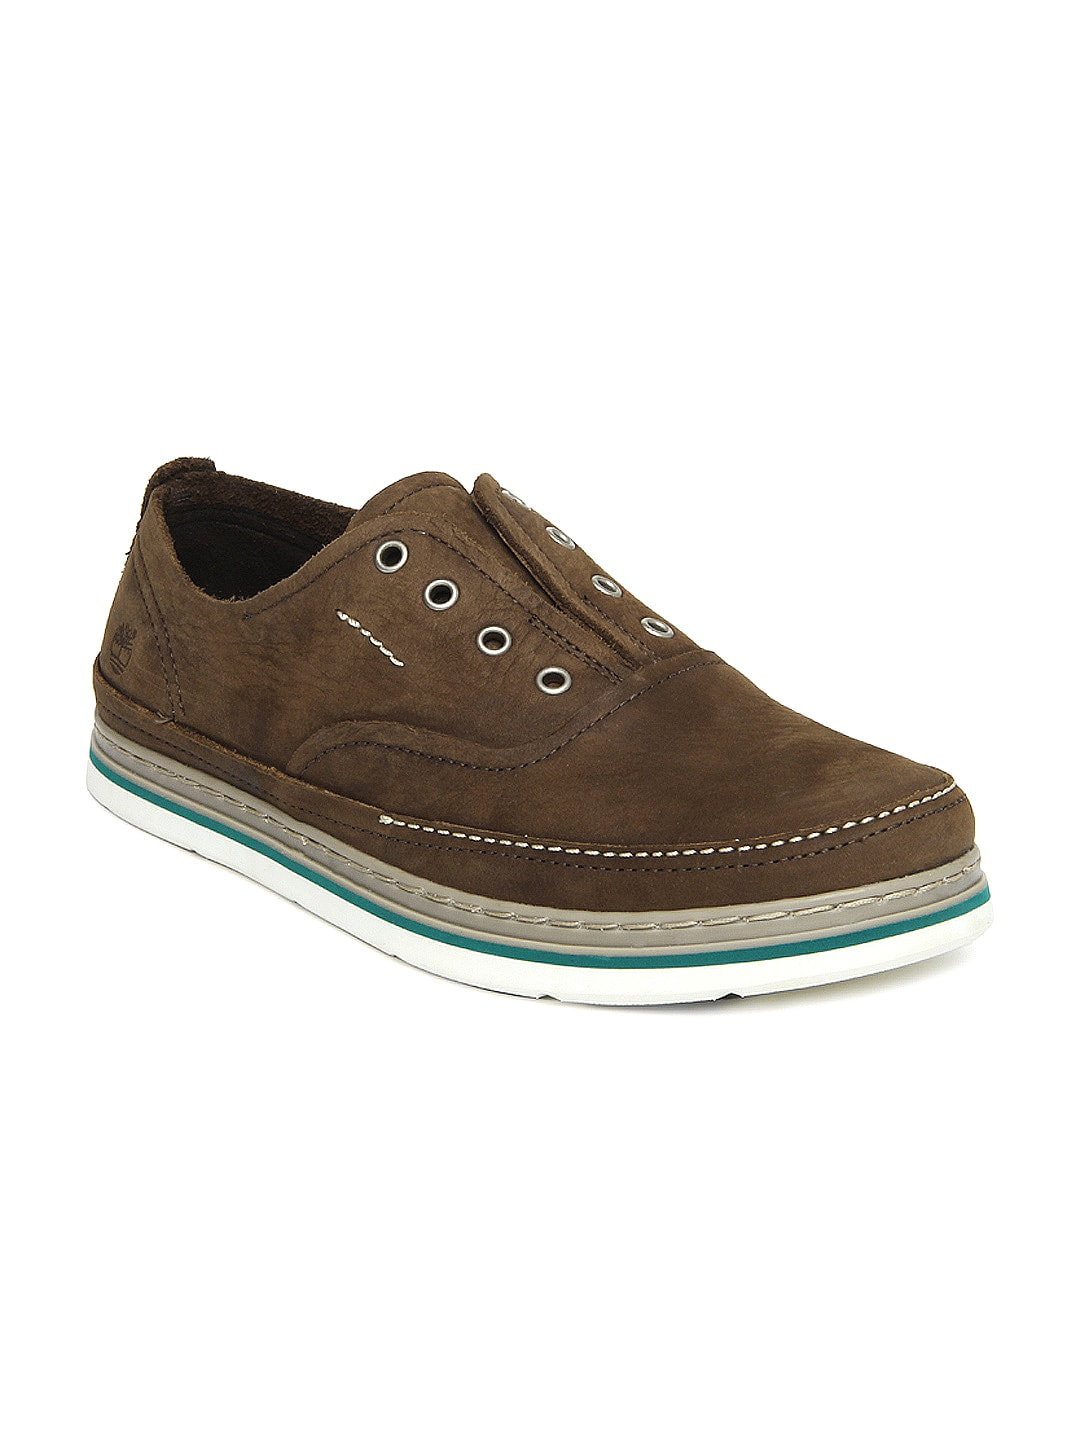 buy timberland brown leather casual shoes casual